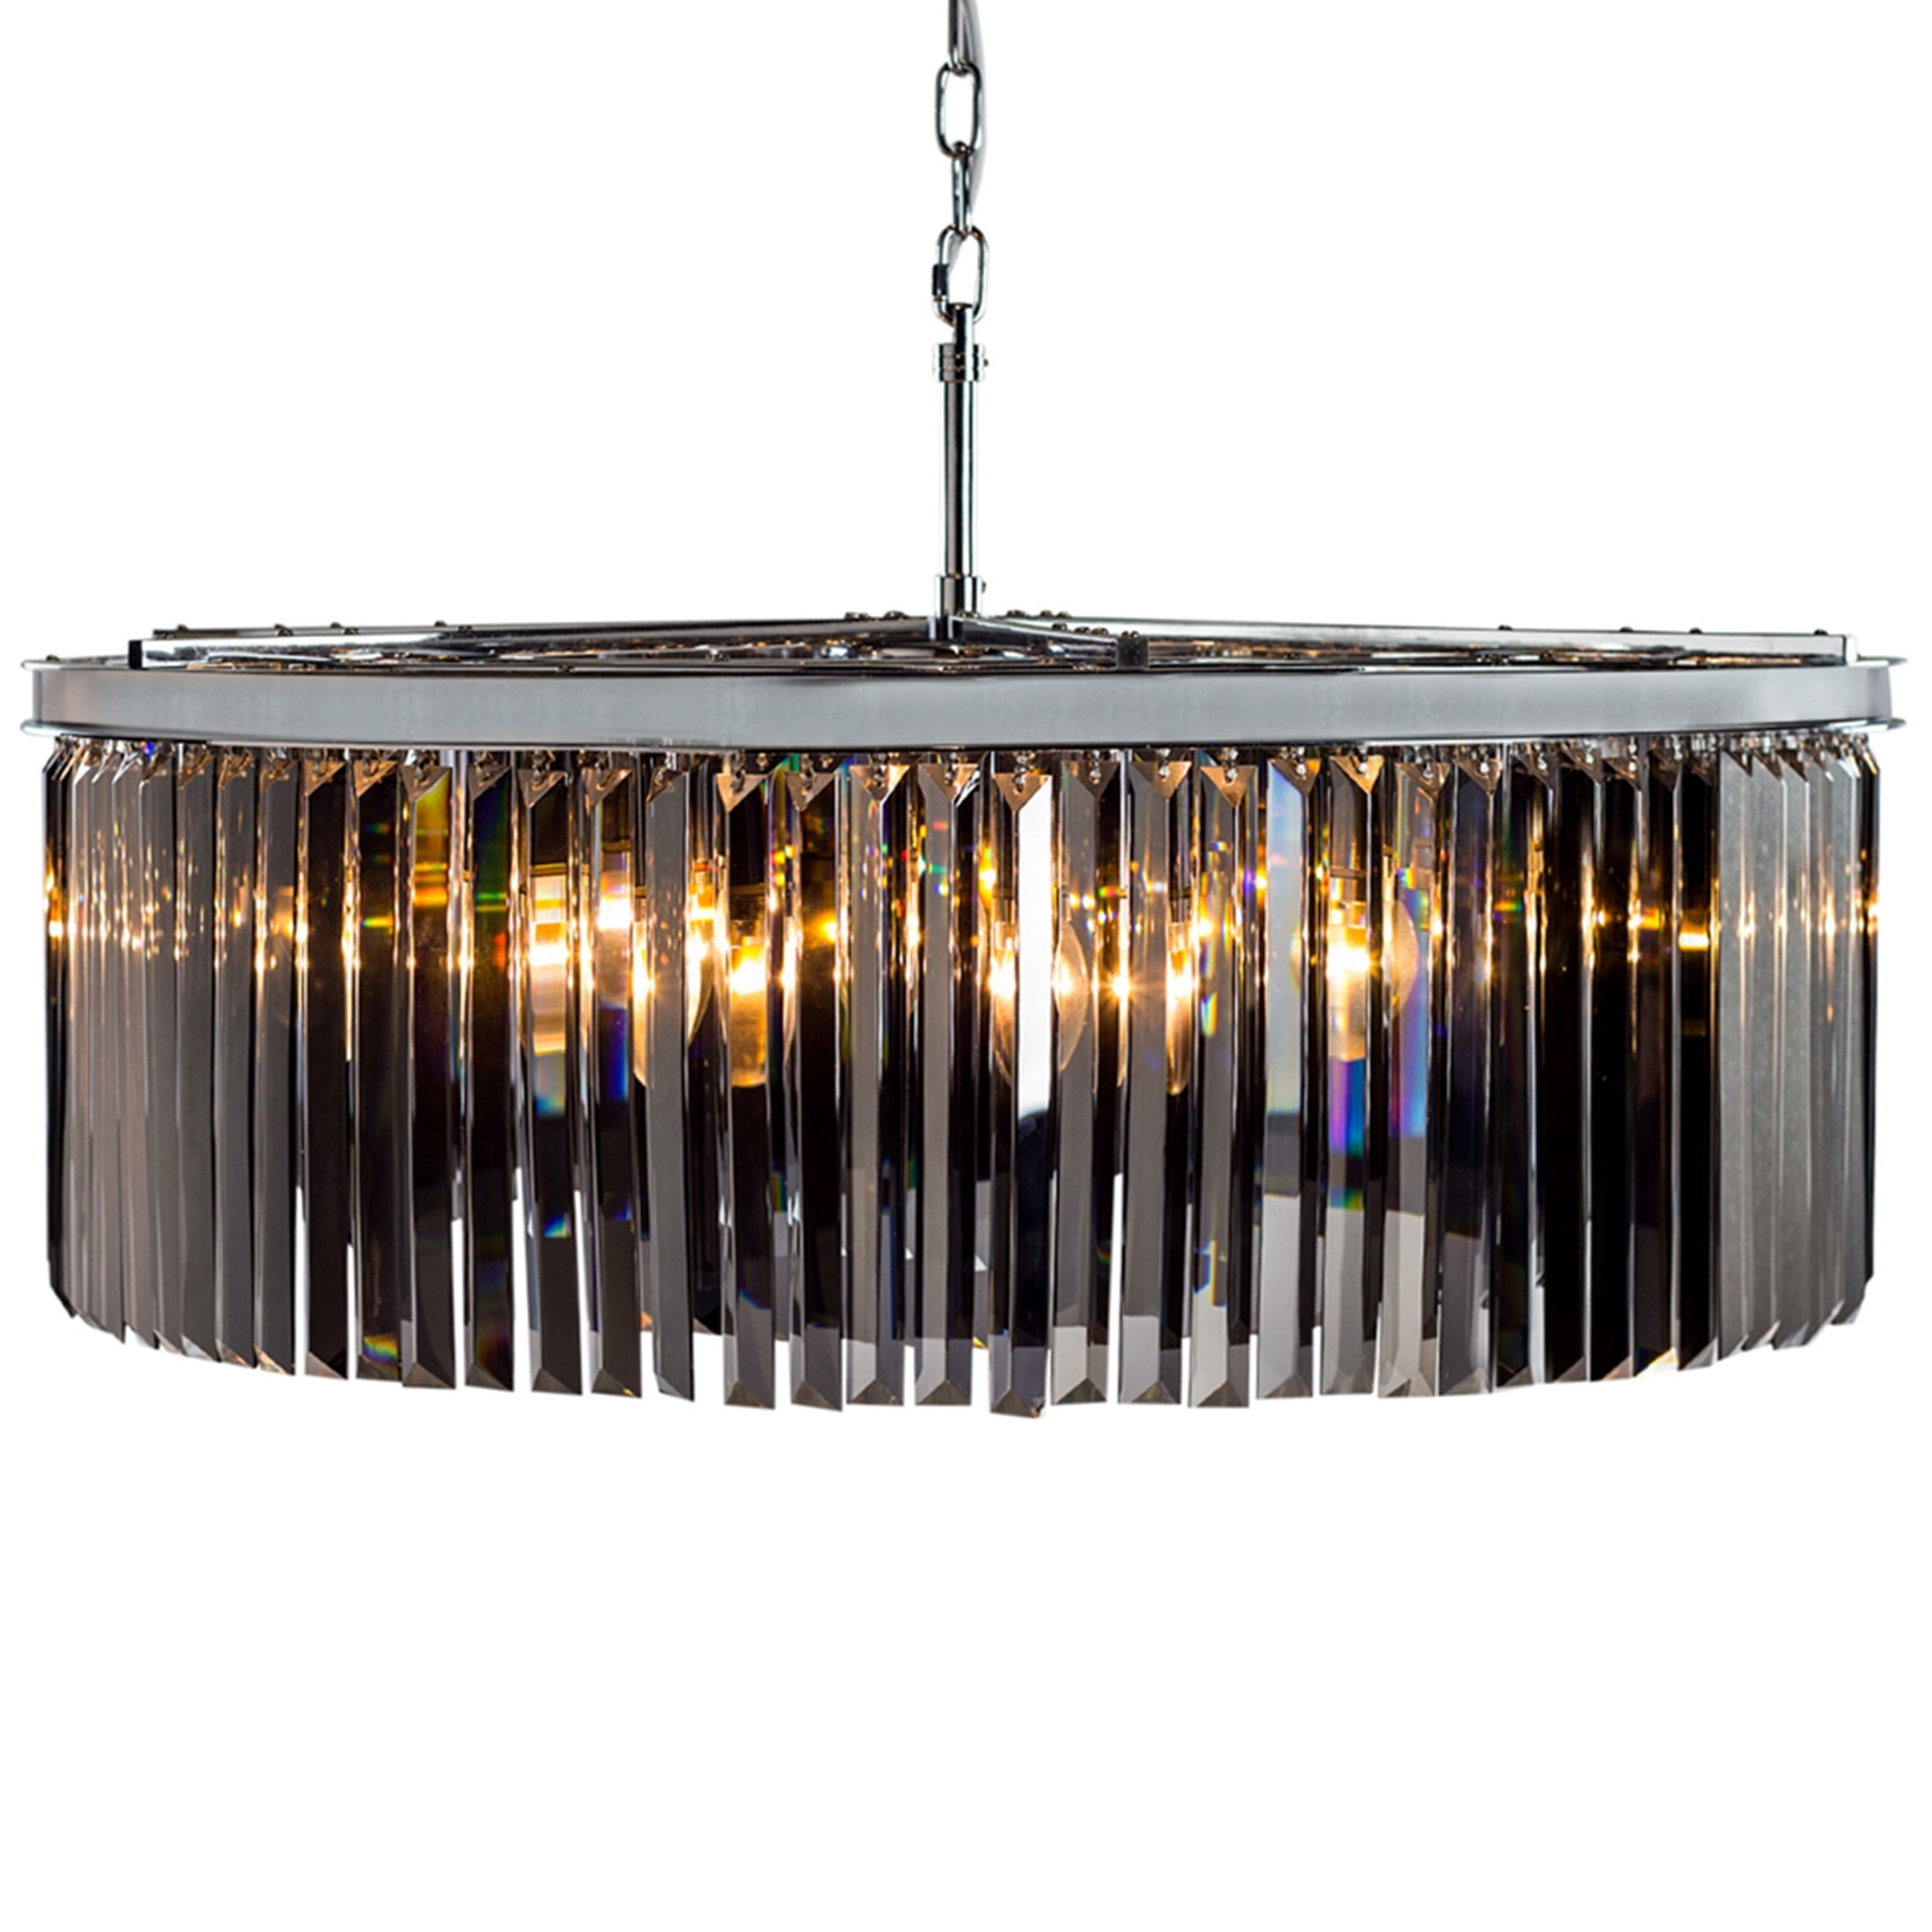 Extra large chrome smoked glass prism drop cascade chandelier online extra large chrome smoked glass prism drop cascade chandelier aloadofball Image collections